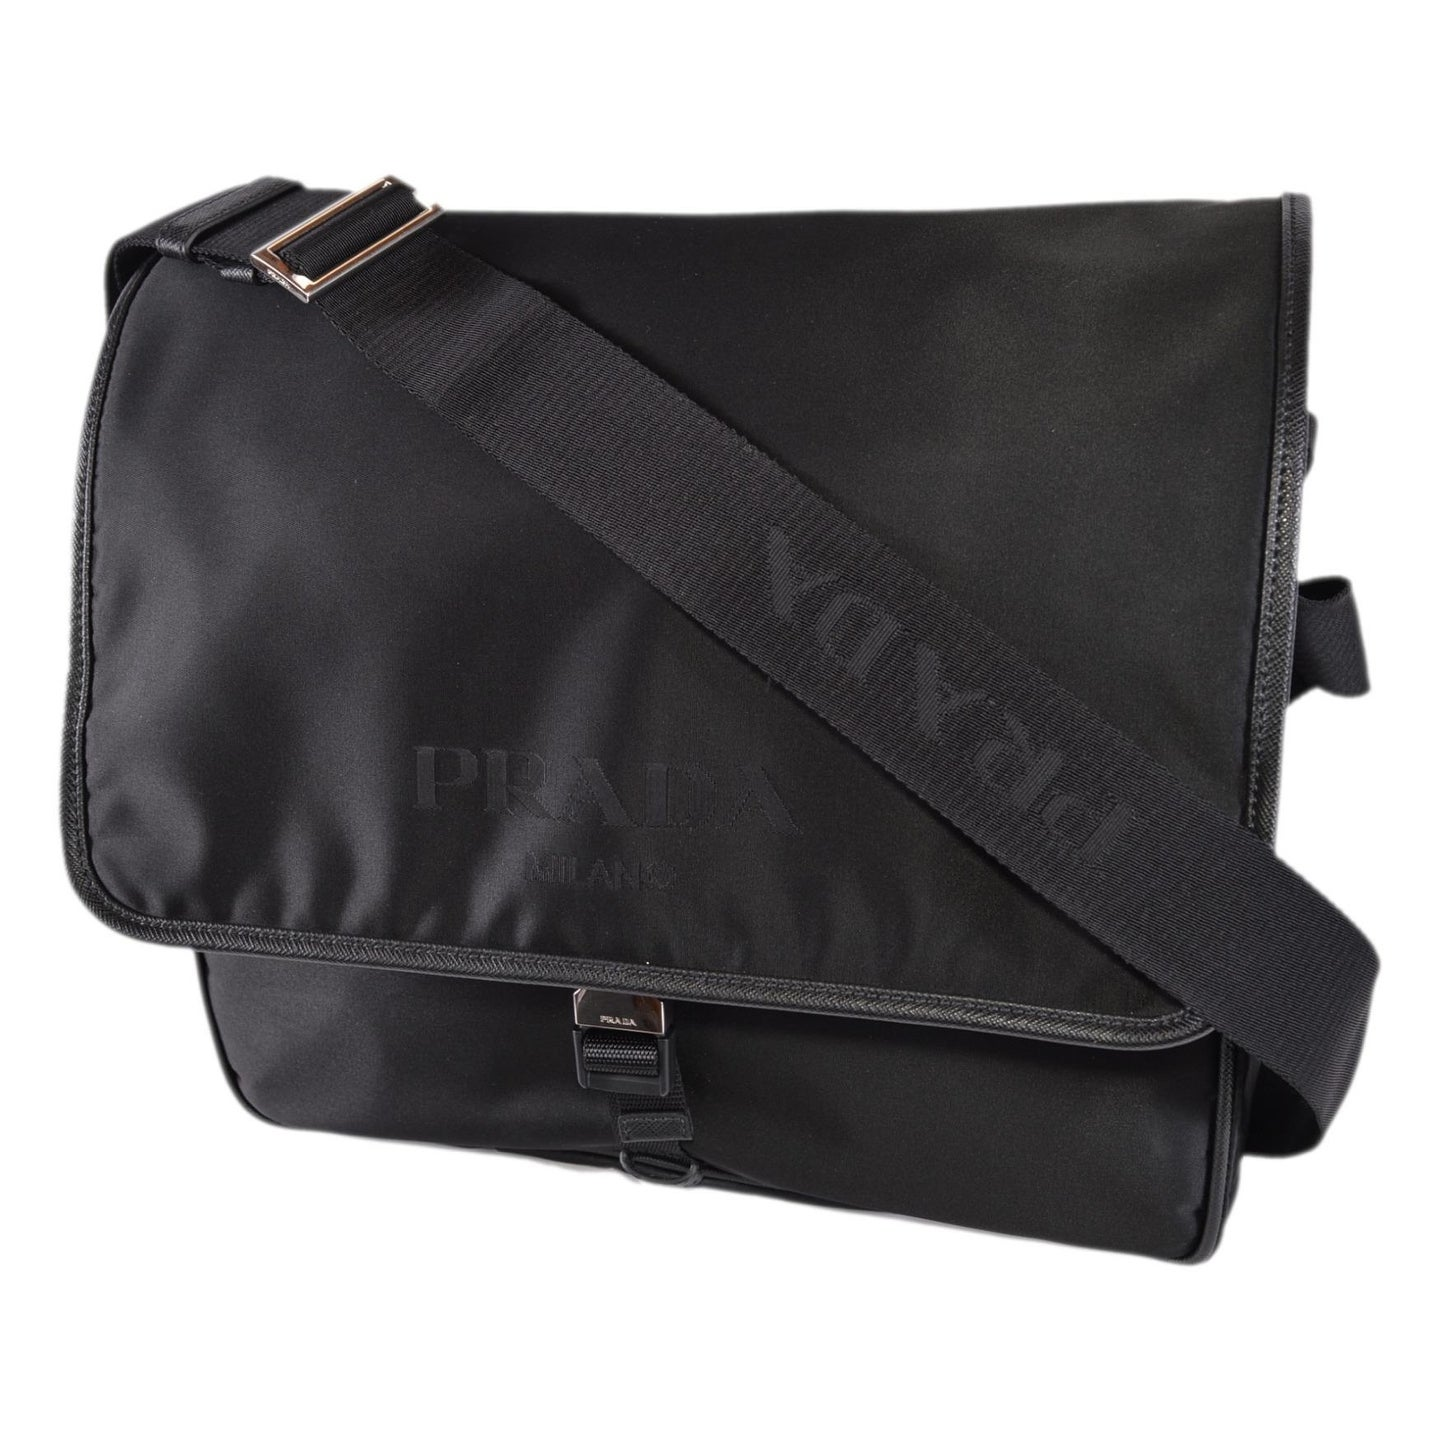 f8bfbd8c1d1a86 Prada Men's Black Nylon Leather Tracolla 2VD166 Messenger Crossbody Bag